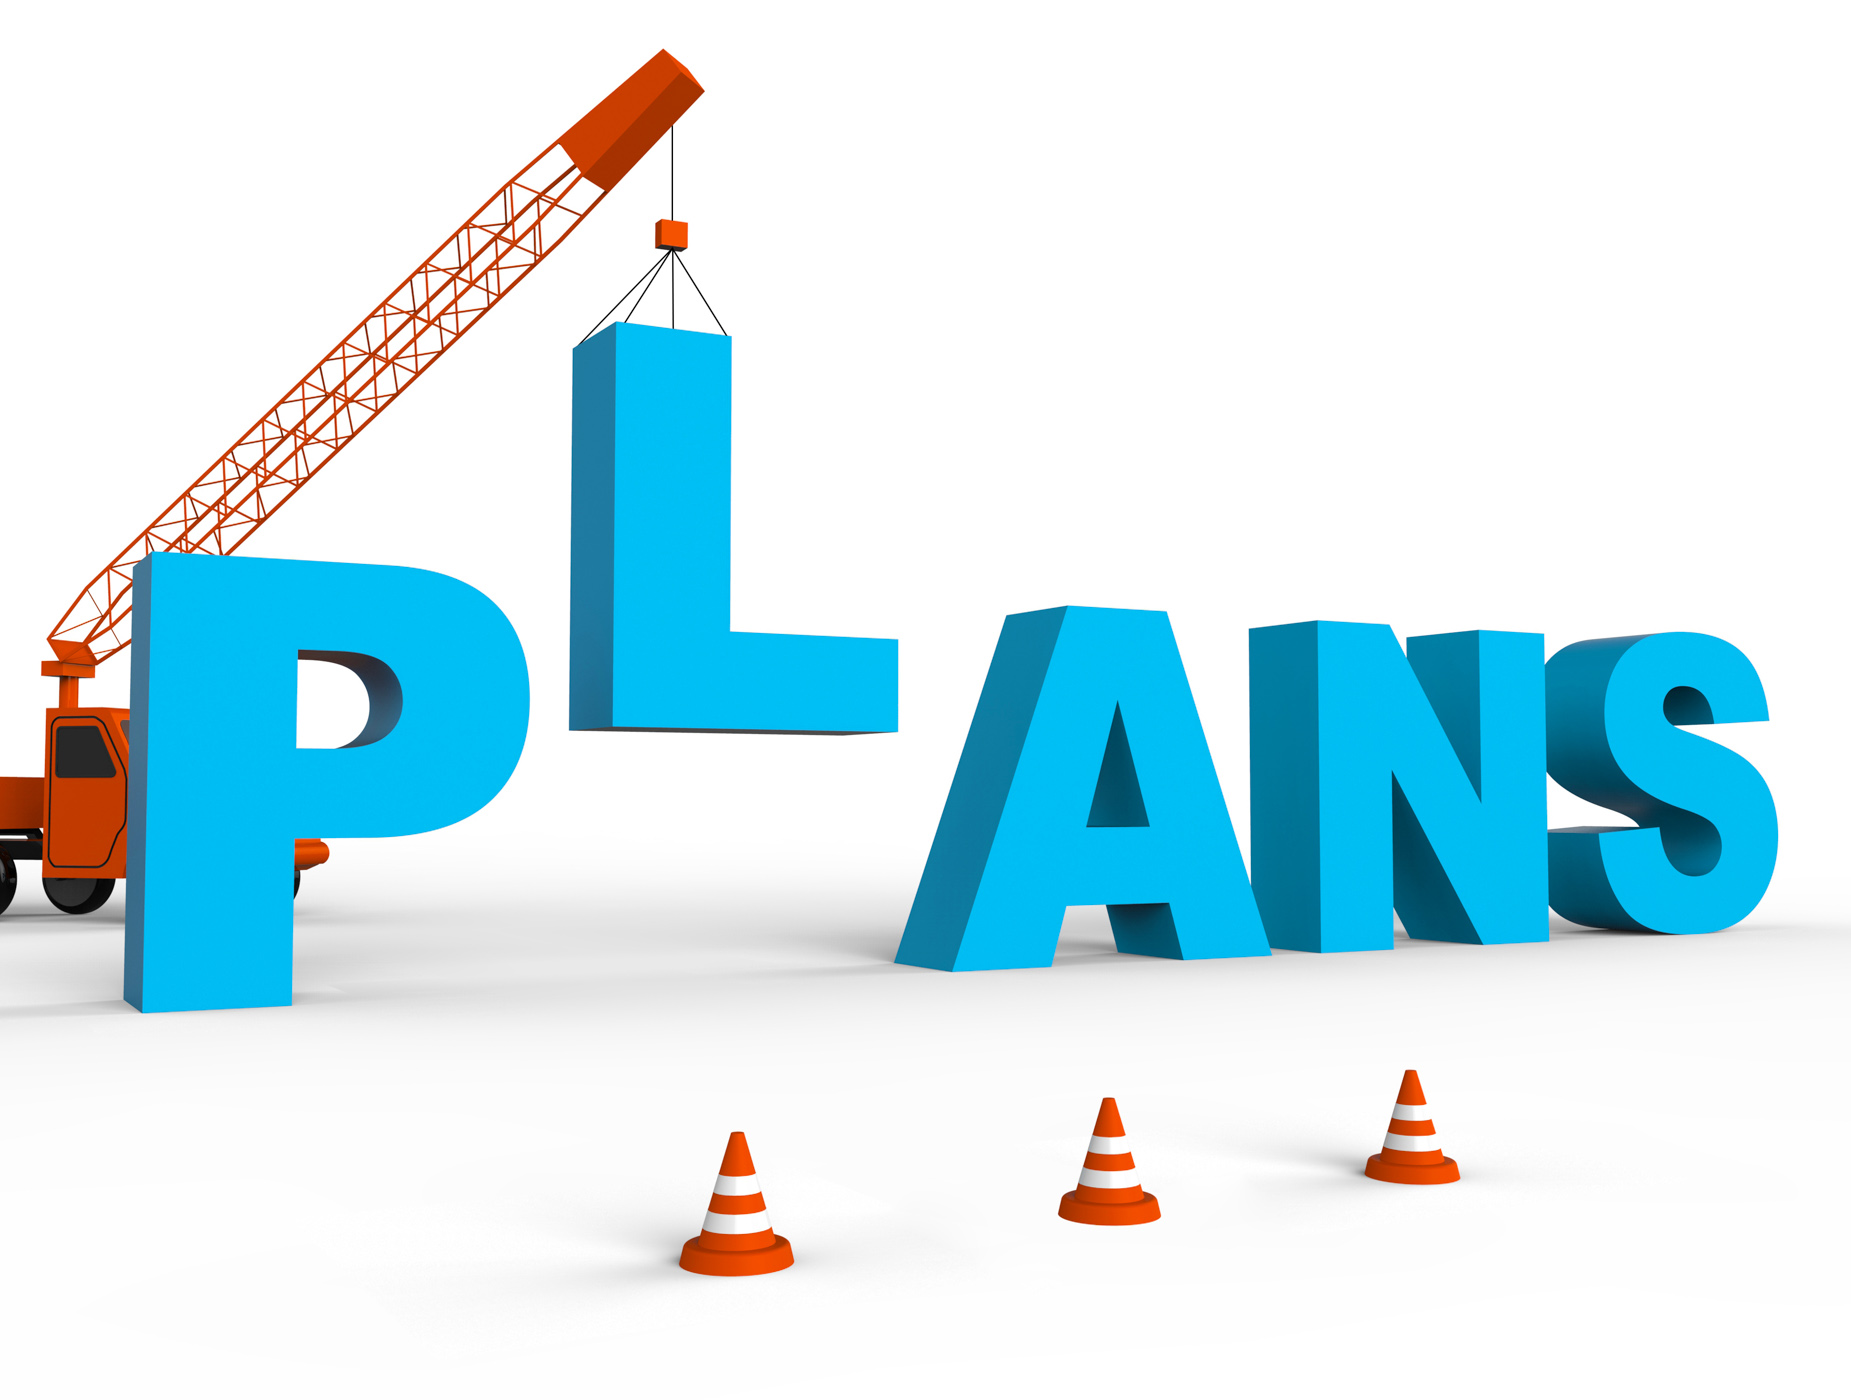 Make plans indicates goals planner 3d rendering photo